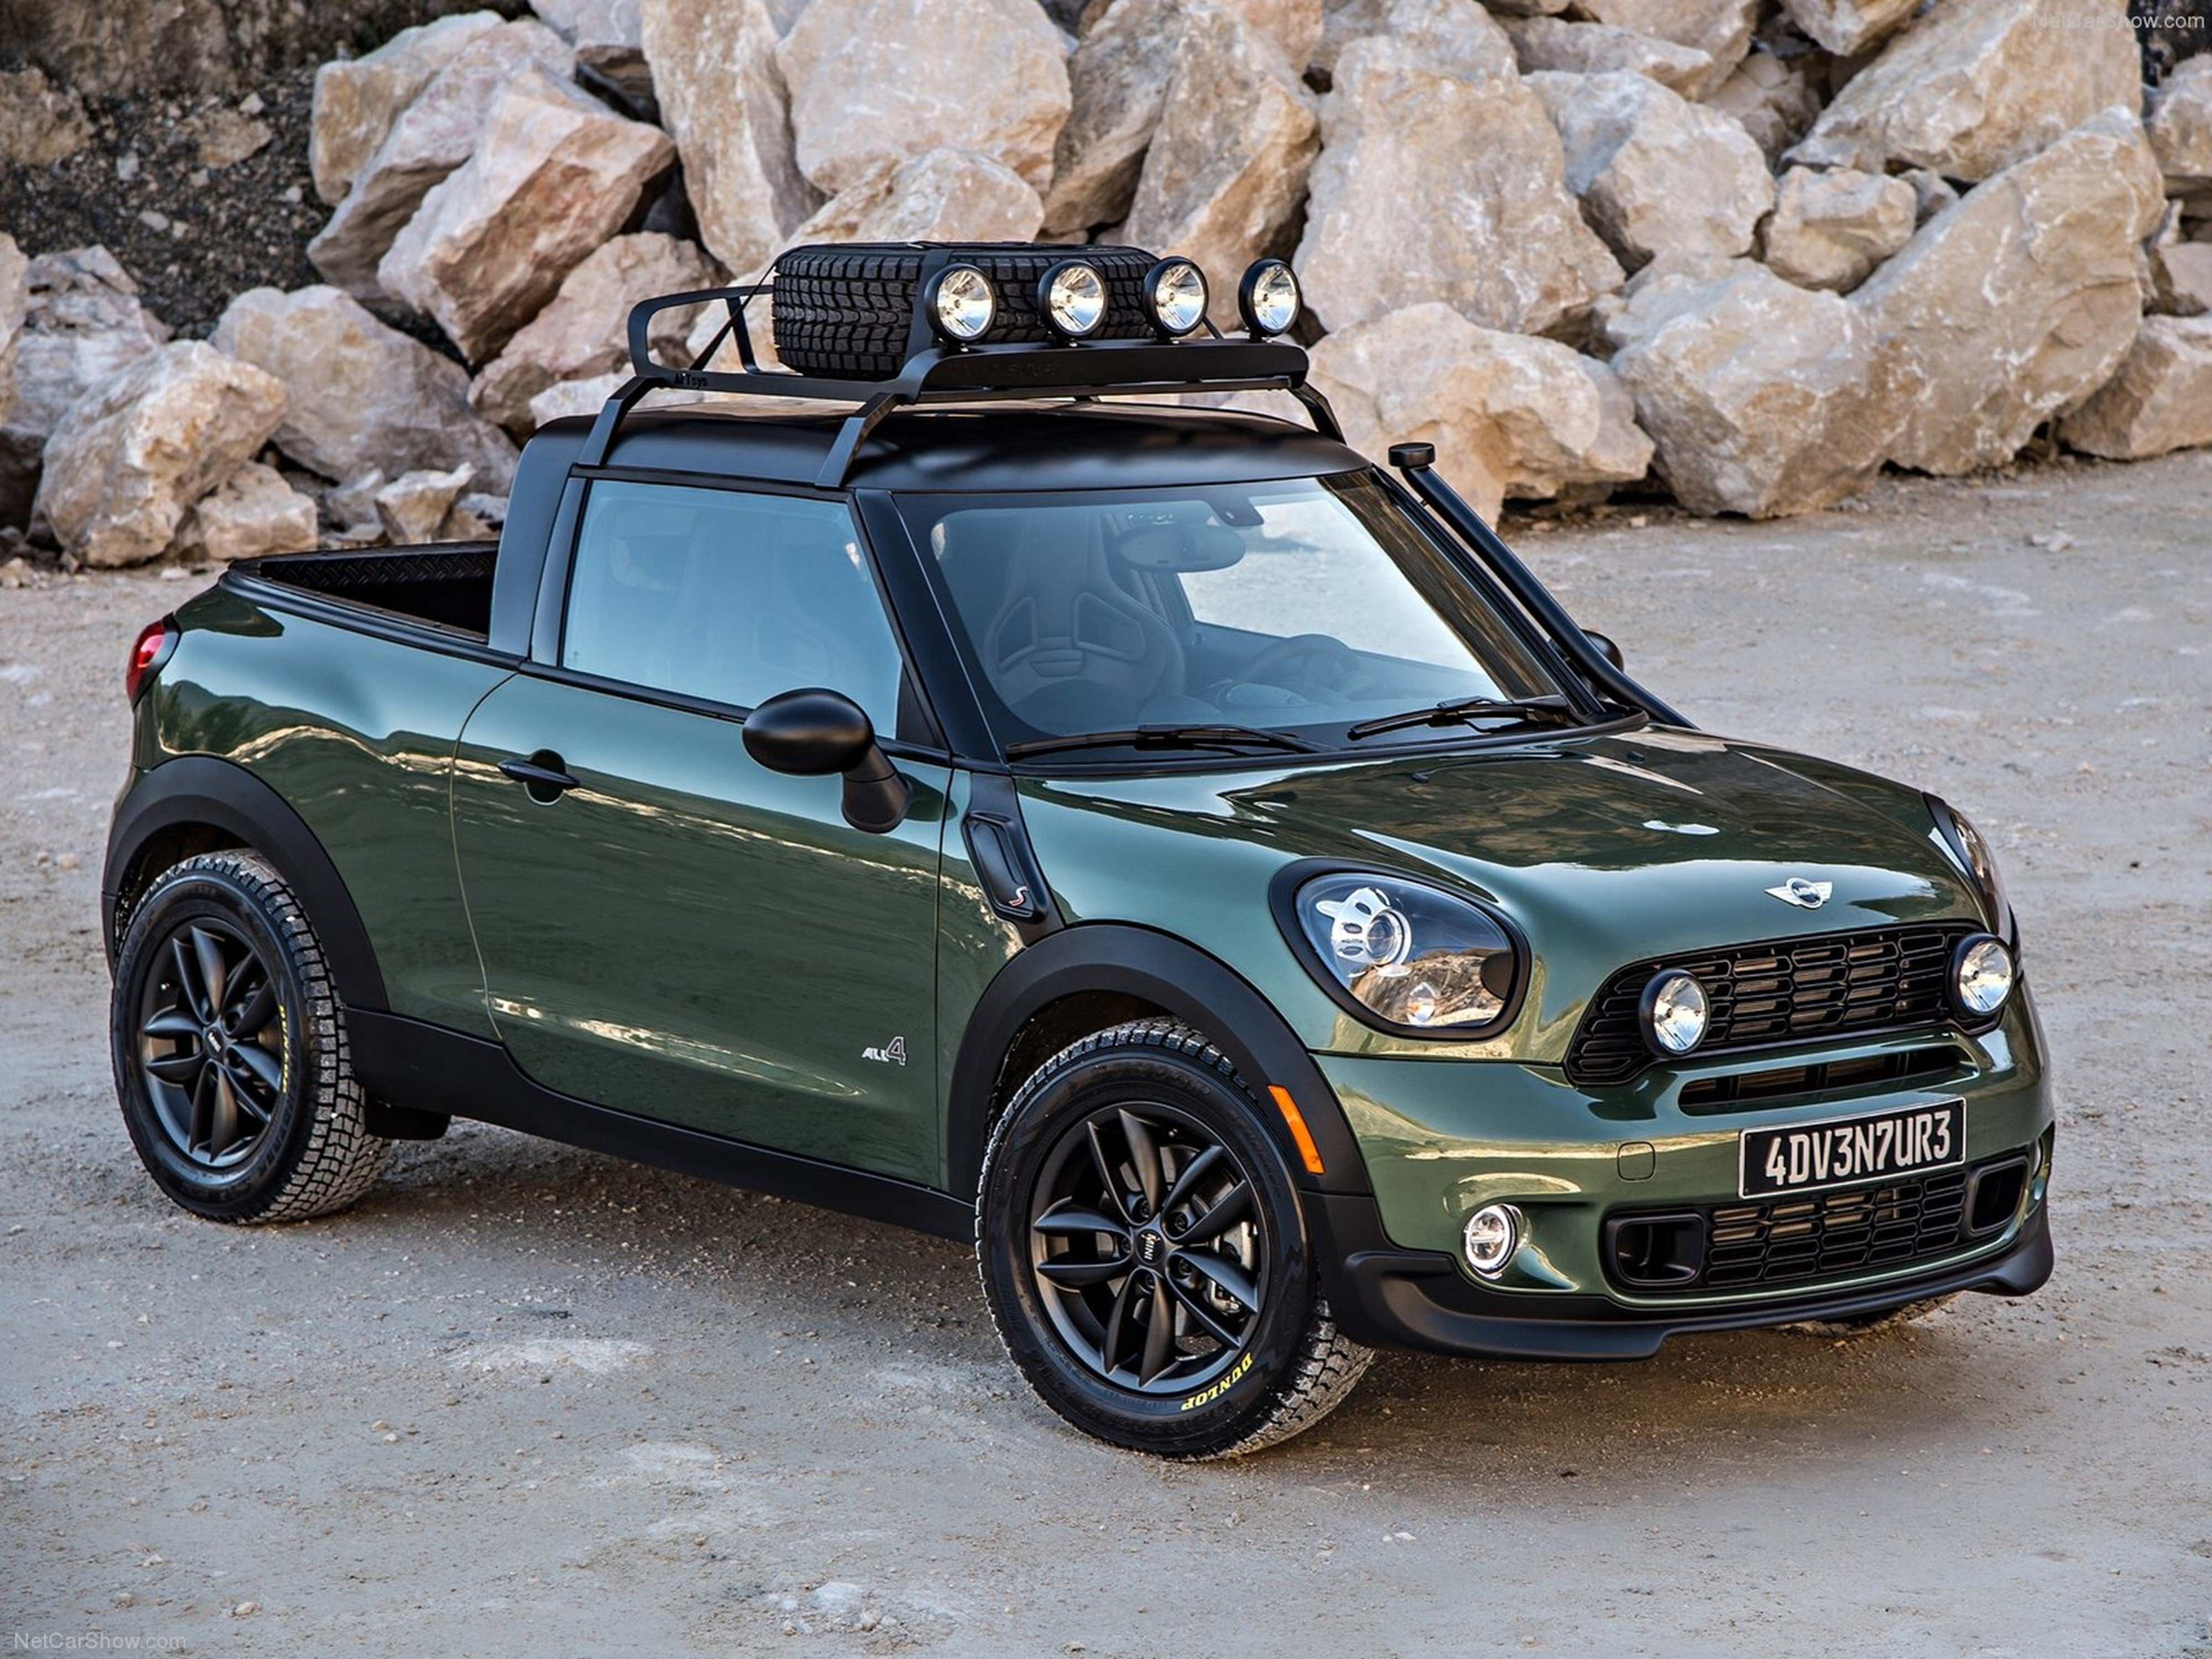 mini paceman adventure concept 2014 car 4x4 off road 4000x3000 wallpaper 4000x3000 355458. Black Bedroom Furniture Sets. Home Design Ideas